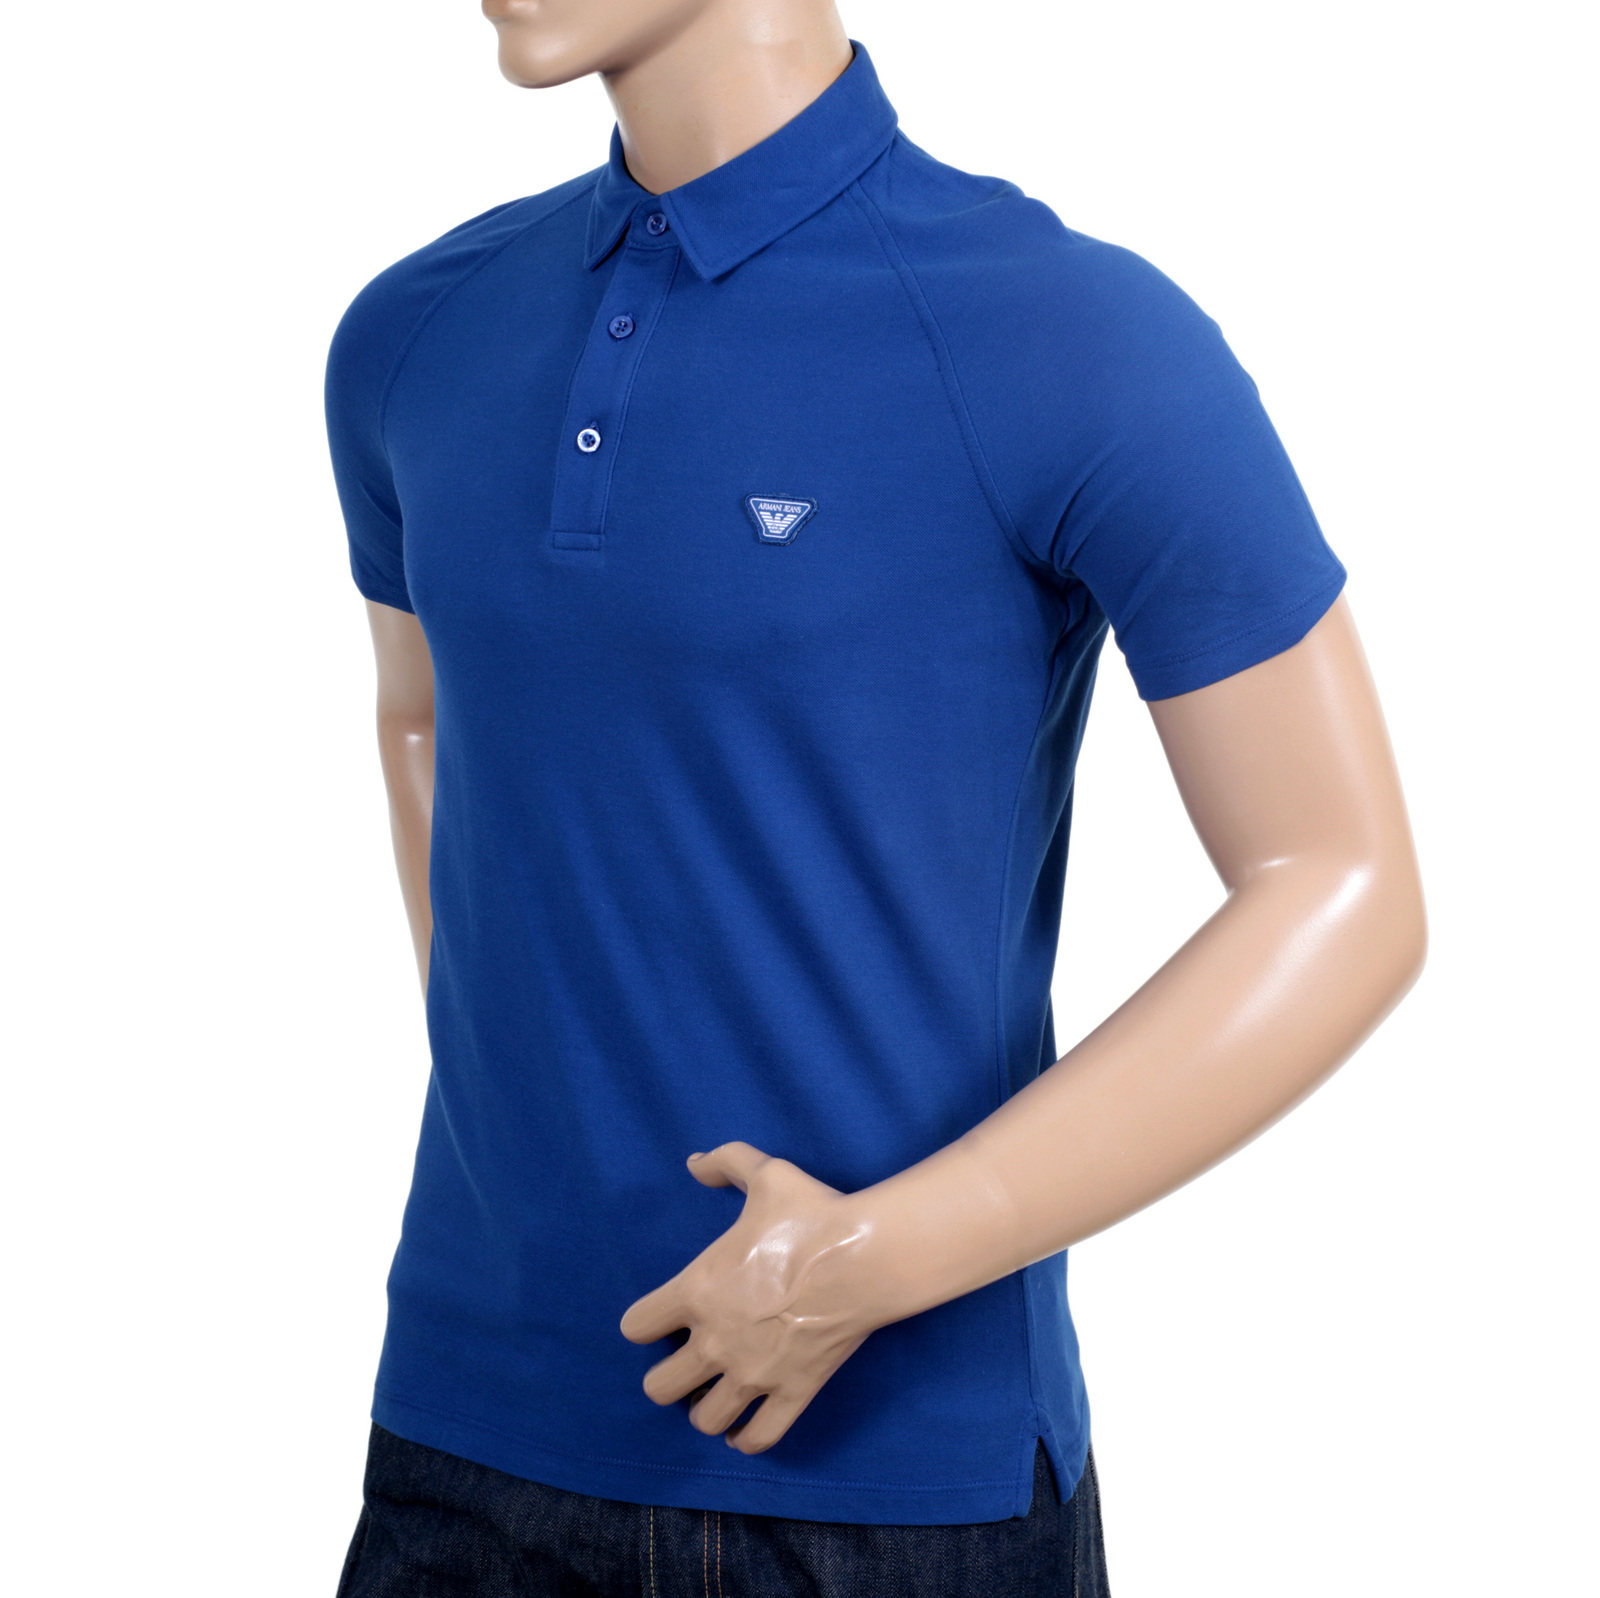 18fbbab83 Armani Jeans Regular Fit Blue Raglan Short Sleeve Polo Shirt with Small  Collar and Applique Chest